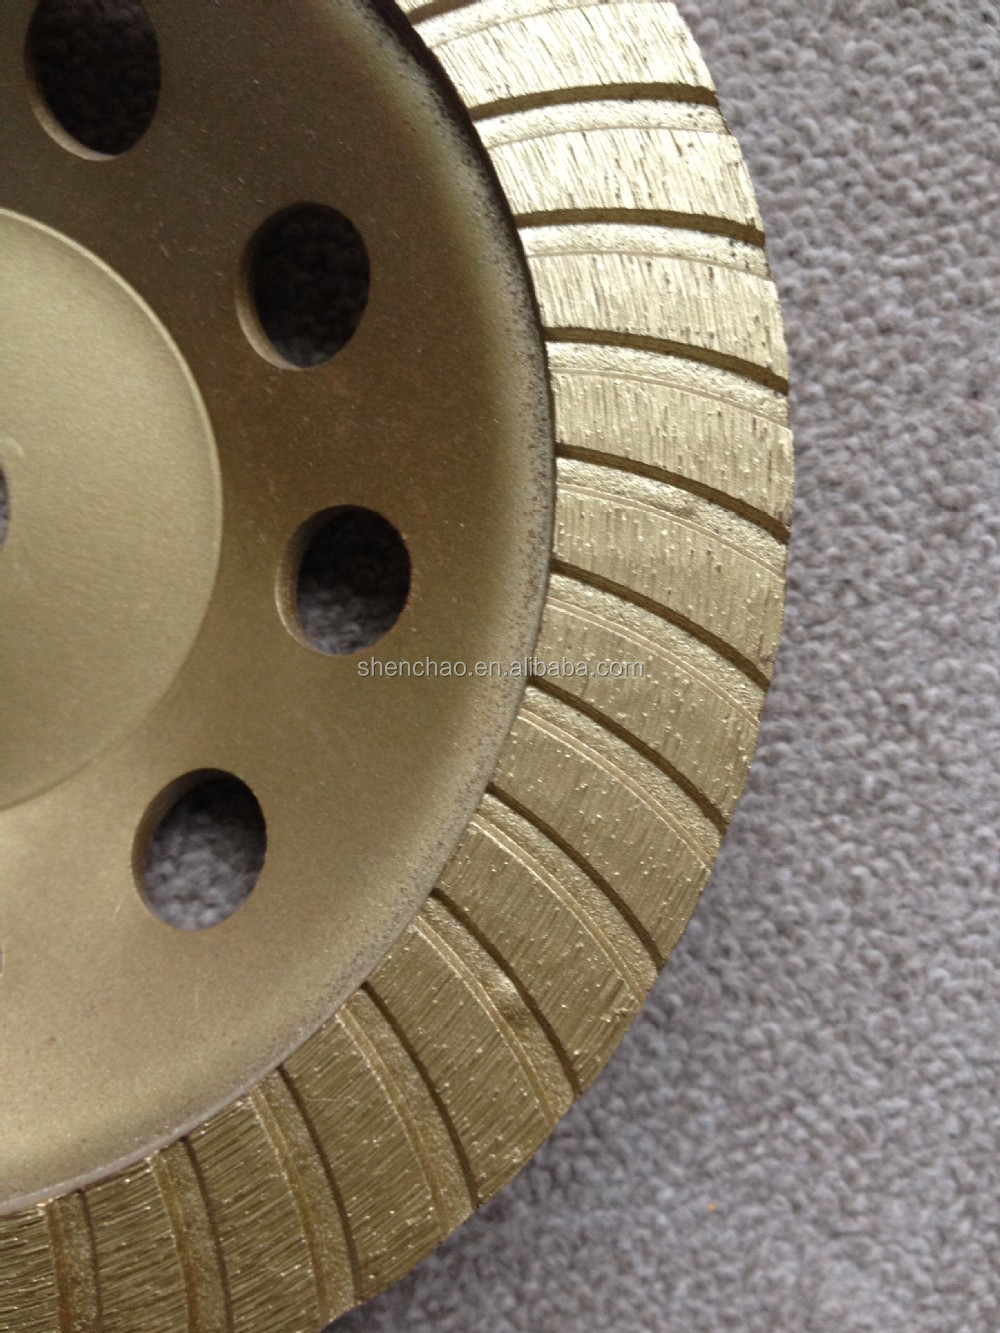 180*22.23/20mm turbo cup wheel have long grinding life for grinding and polishing concrete,masonry,brick,block etc